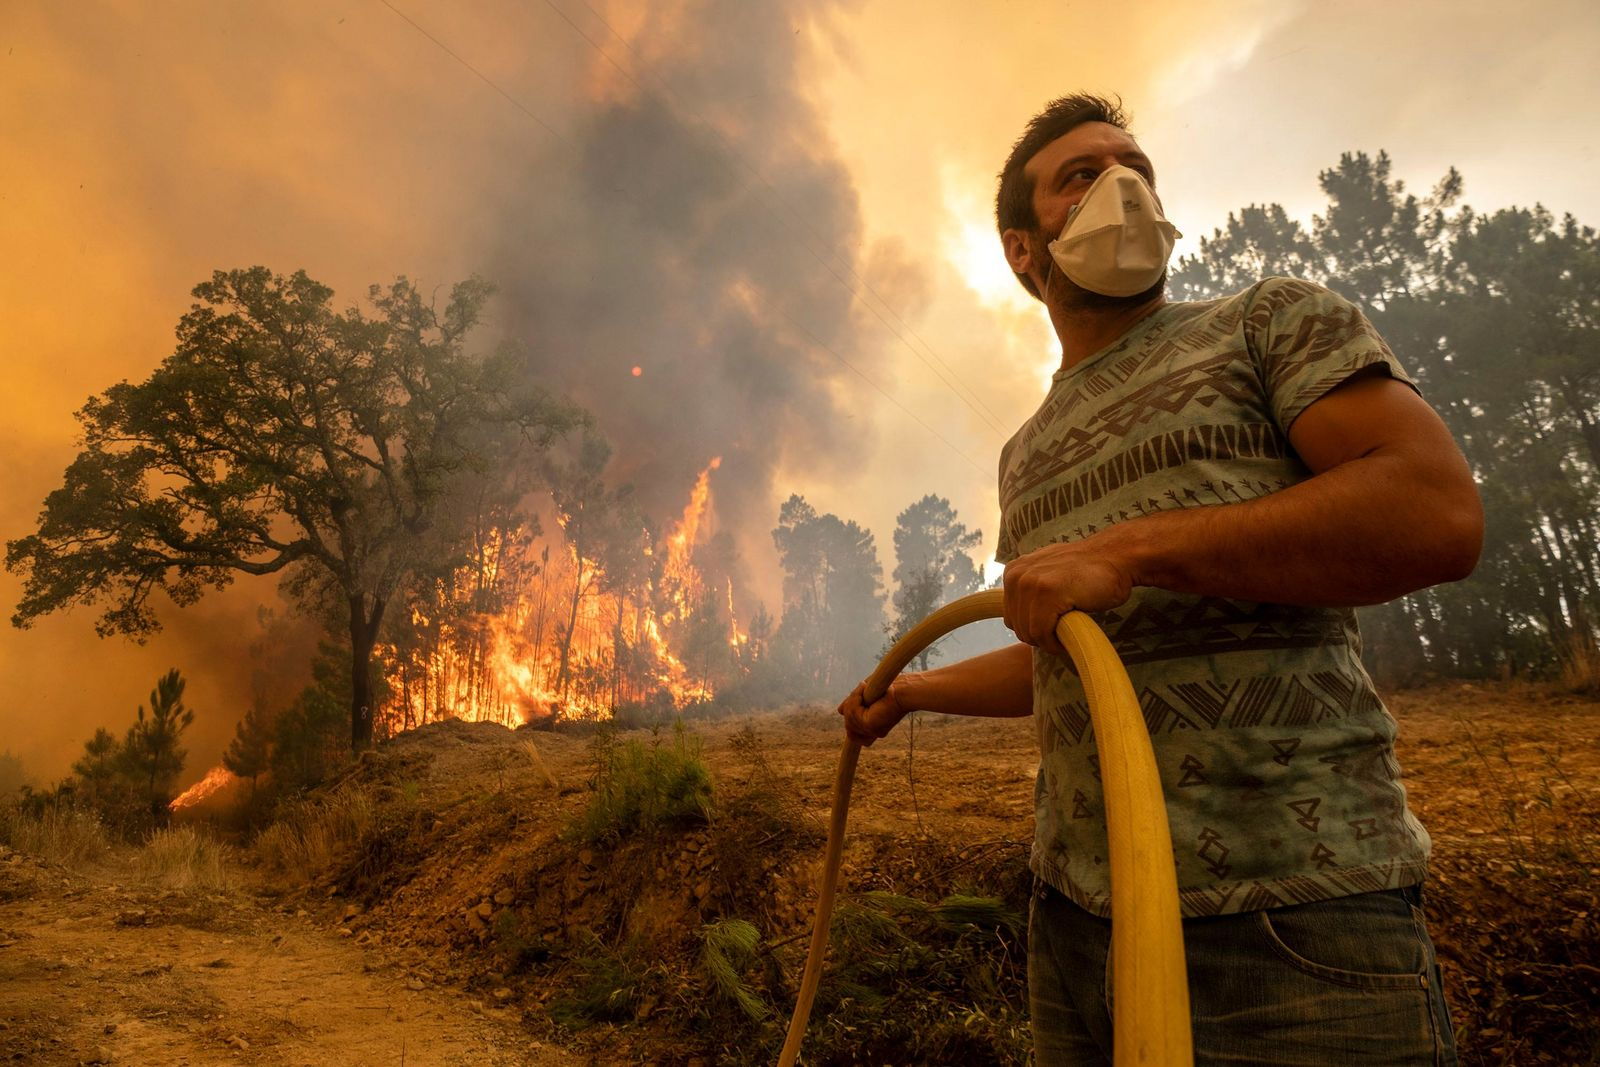 A villager tries to extinguish a wildfire at the village of Chaveira, near Macao, in central Portugal on Monday, July 22, 2019.{ } (AP Photo/Sergio Azenha)